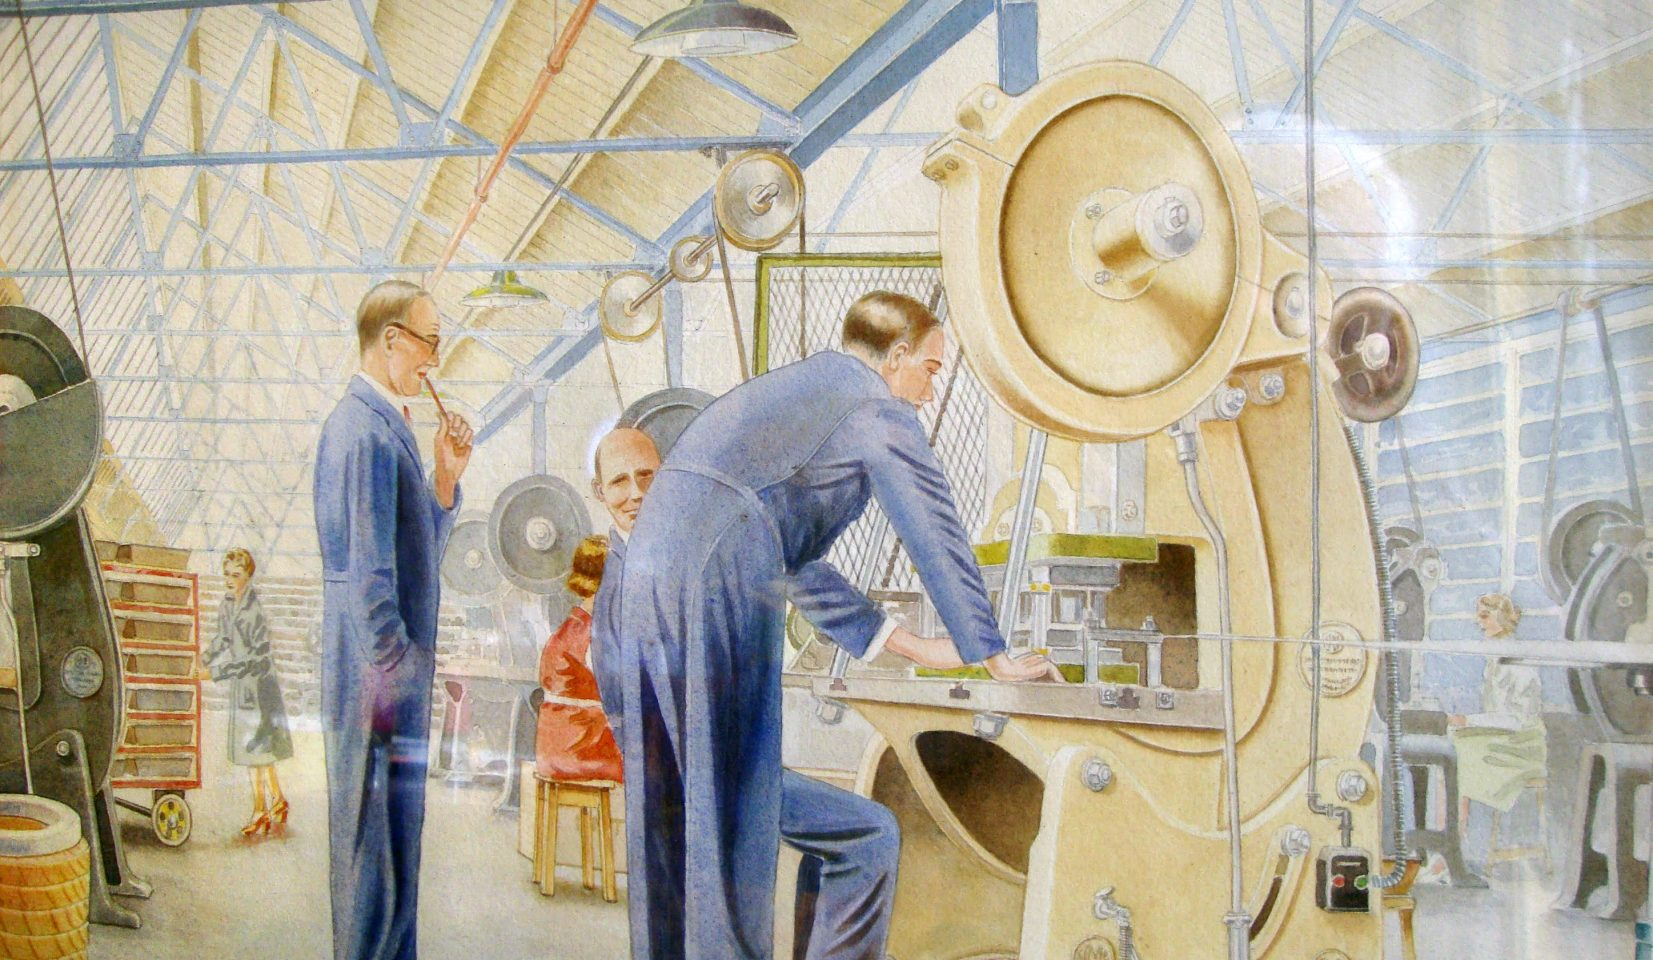 'A Problem in the Cutting Room', a watercolour by H. Neal, dating from the 1950s, used to hang in the foreman's office at Myers in Langley Green. (Left to right, Harold Jenkins, Frank Cornock and Bill Forge.)